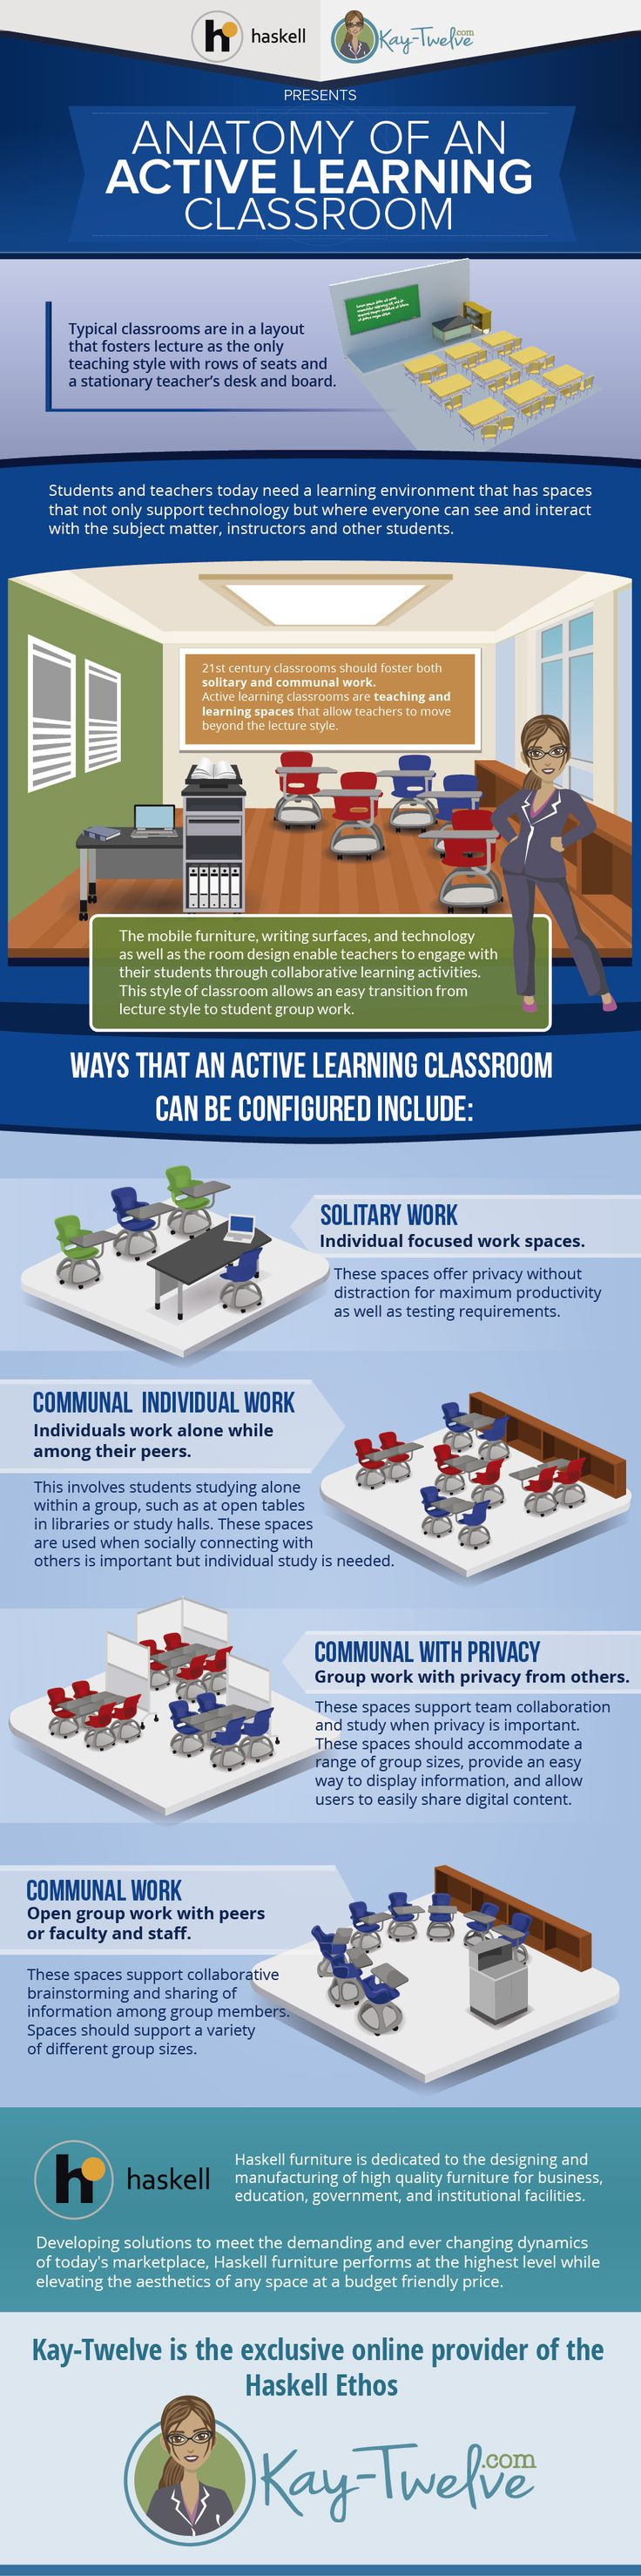 Anatomy of an Active Learning Classroom - Active Learning classrooms are teaching and learning spaces that allow teachers to move beyond the lecture style. Students and teachers today need a learning environment that has spaces that not only support technology but where everyone can see and interact with the subject matter, instructors and other students. #21stcentruylearning #activelearning #education